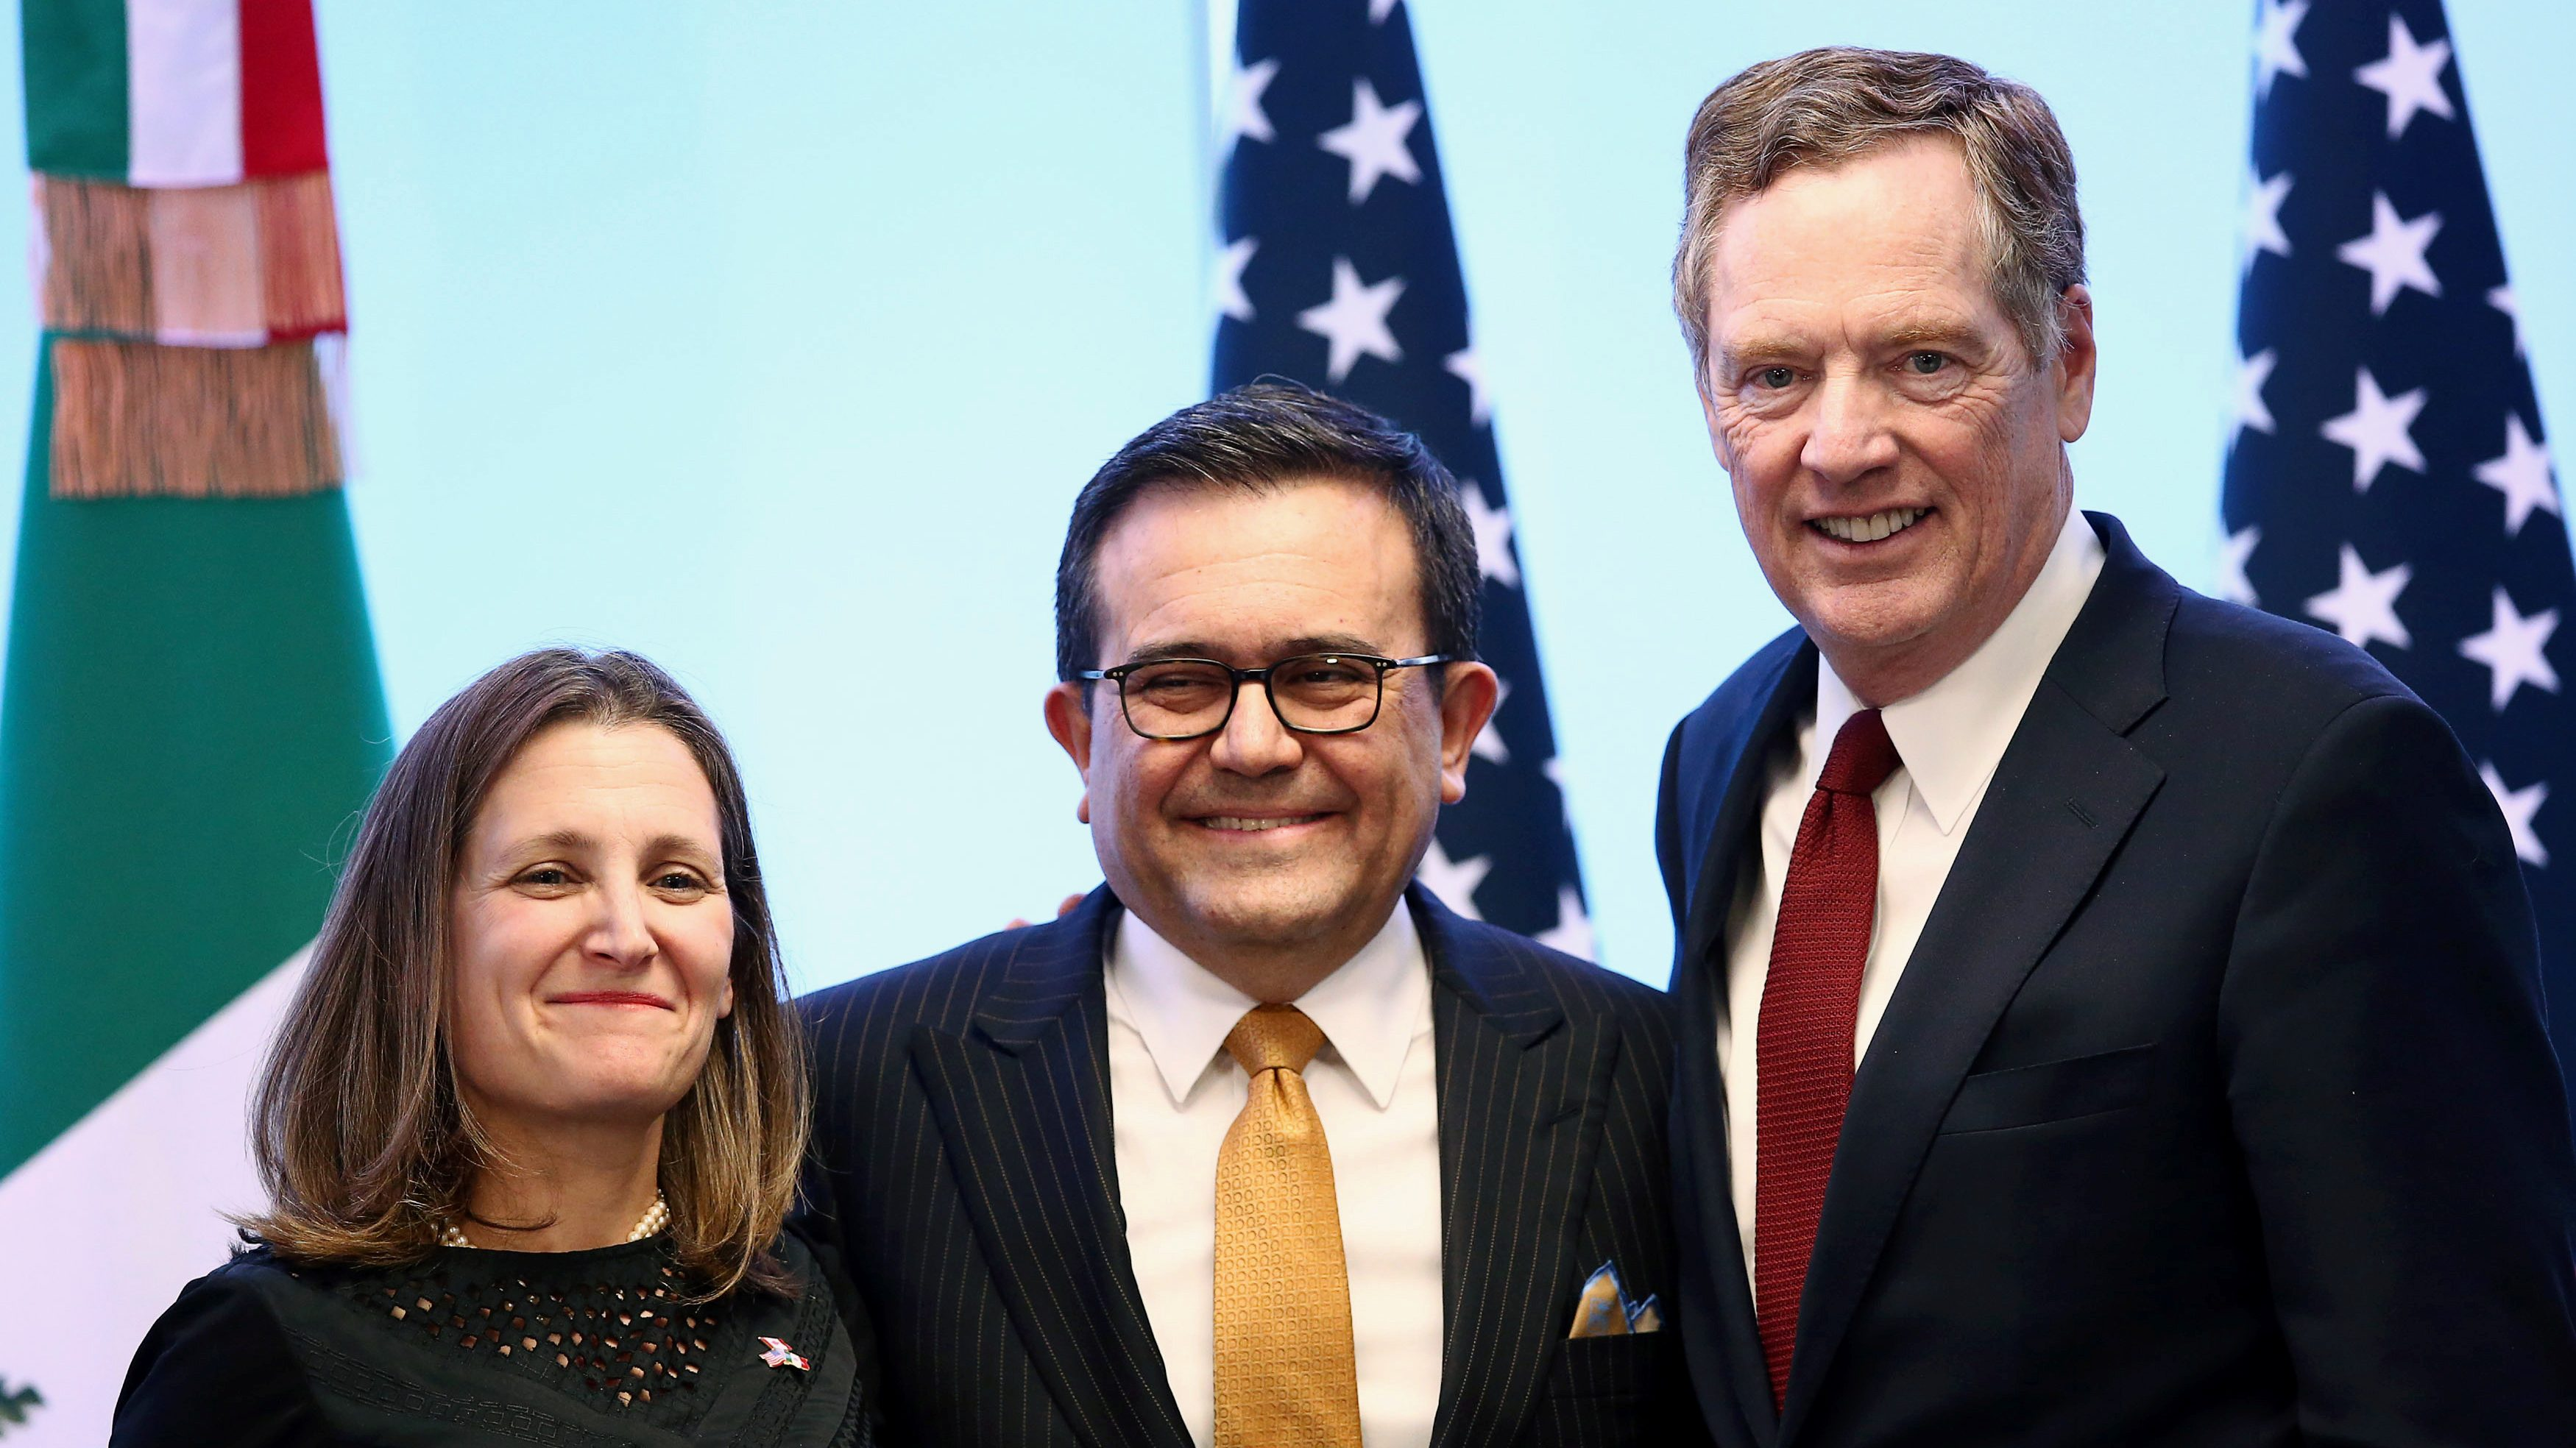 Canadian Foreign Minister Chrystia Freeland, Mexican Economy Minister Ildefonso Guajardo and U.S. Trade Representative Robert Lighthizer